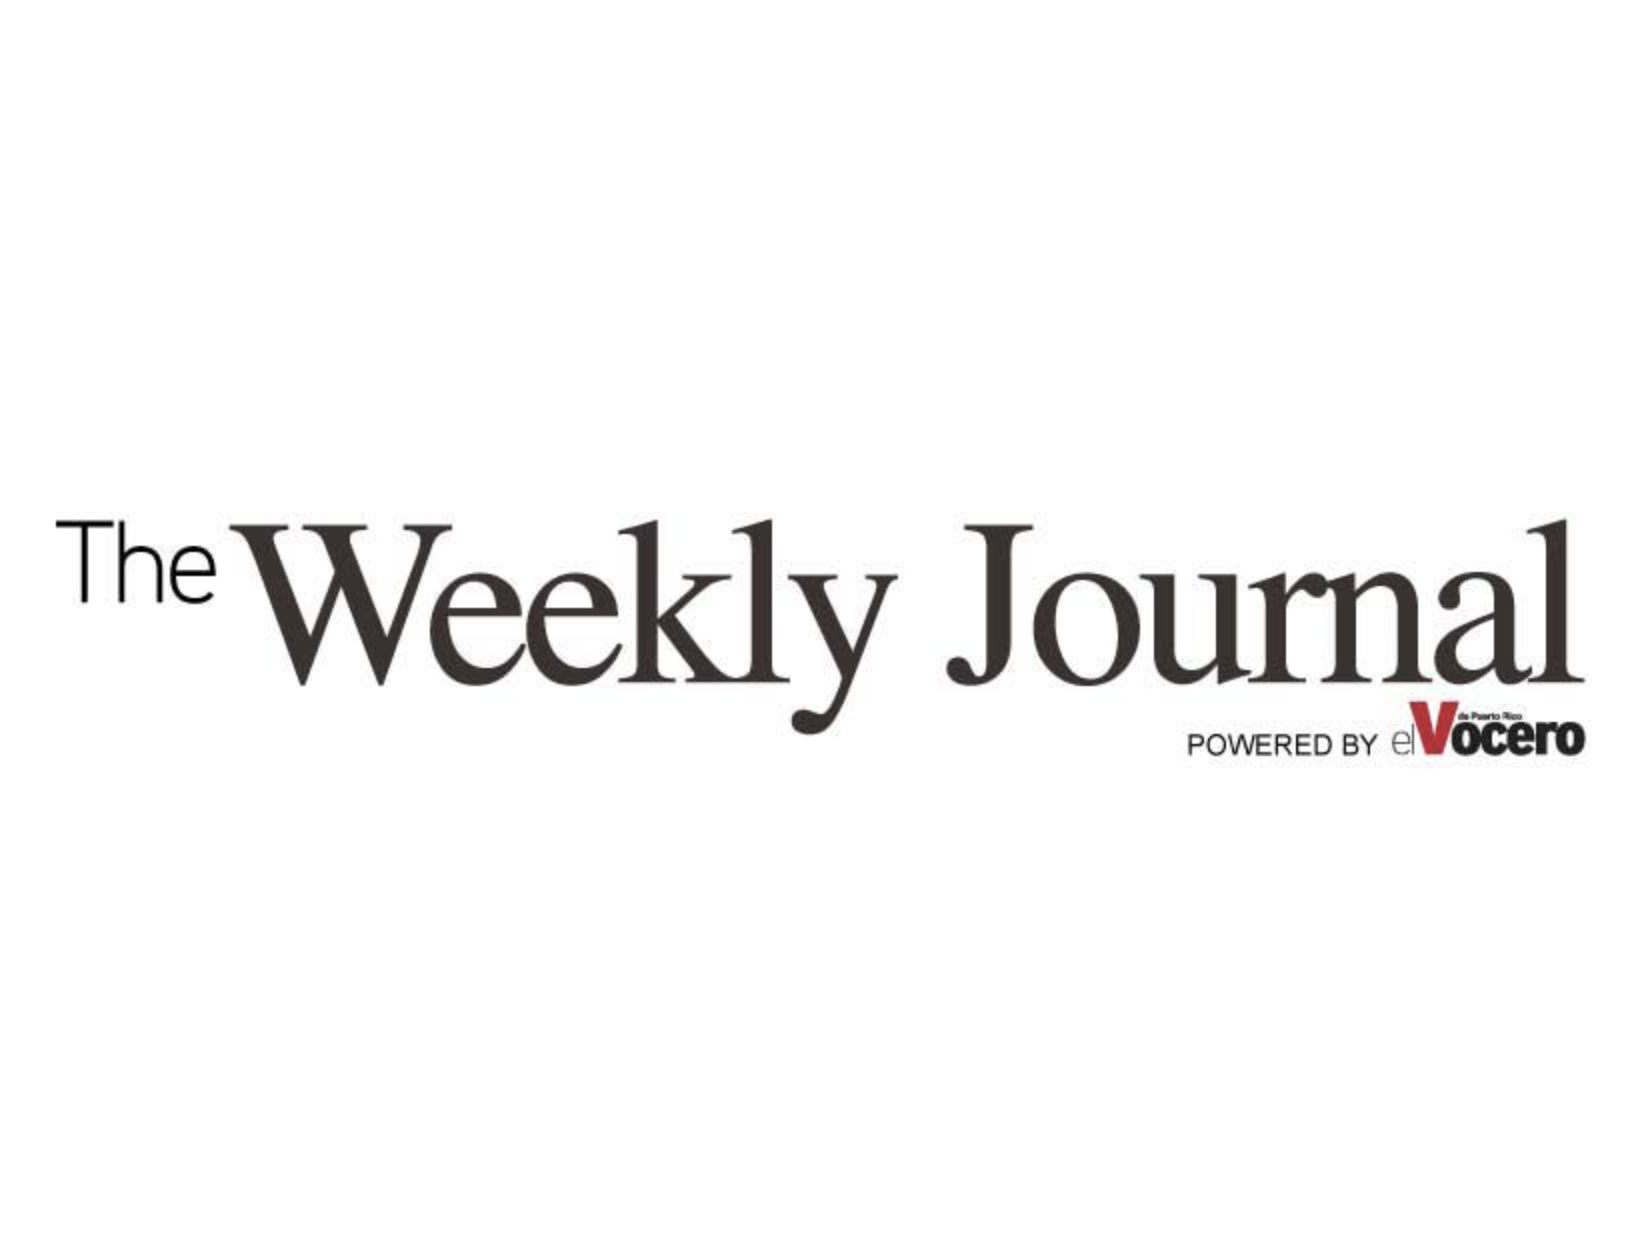 The Weekly Journal